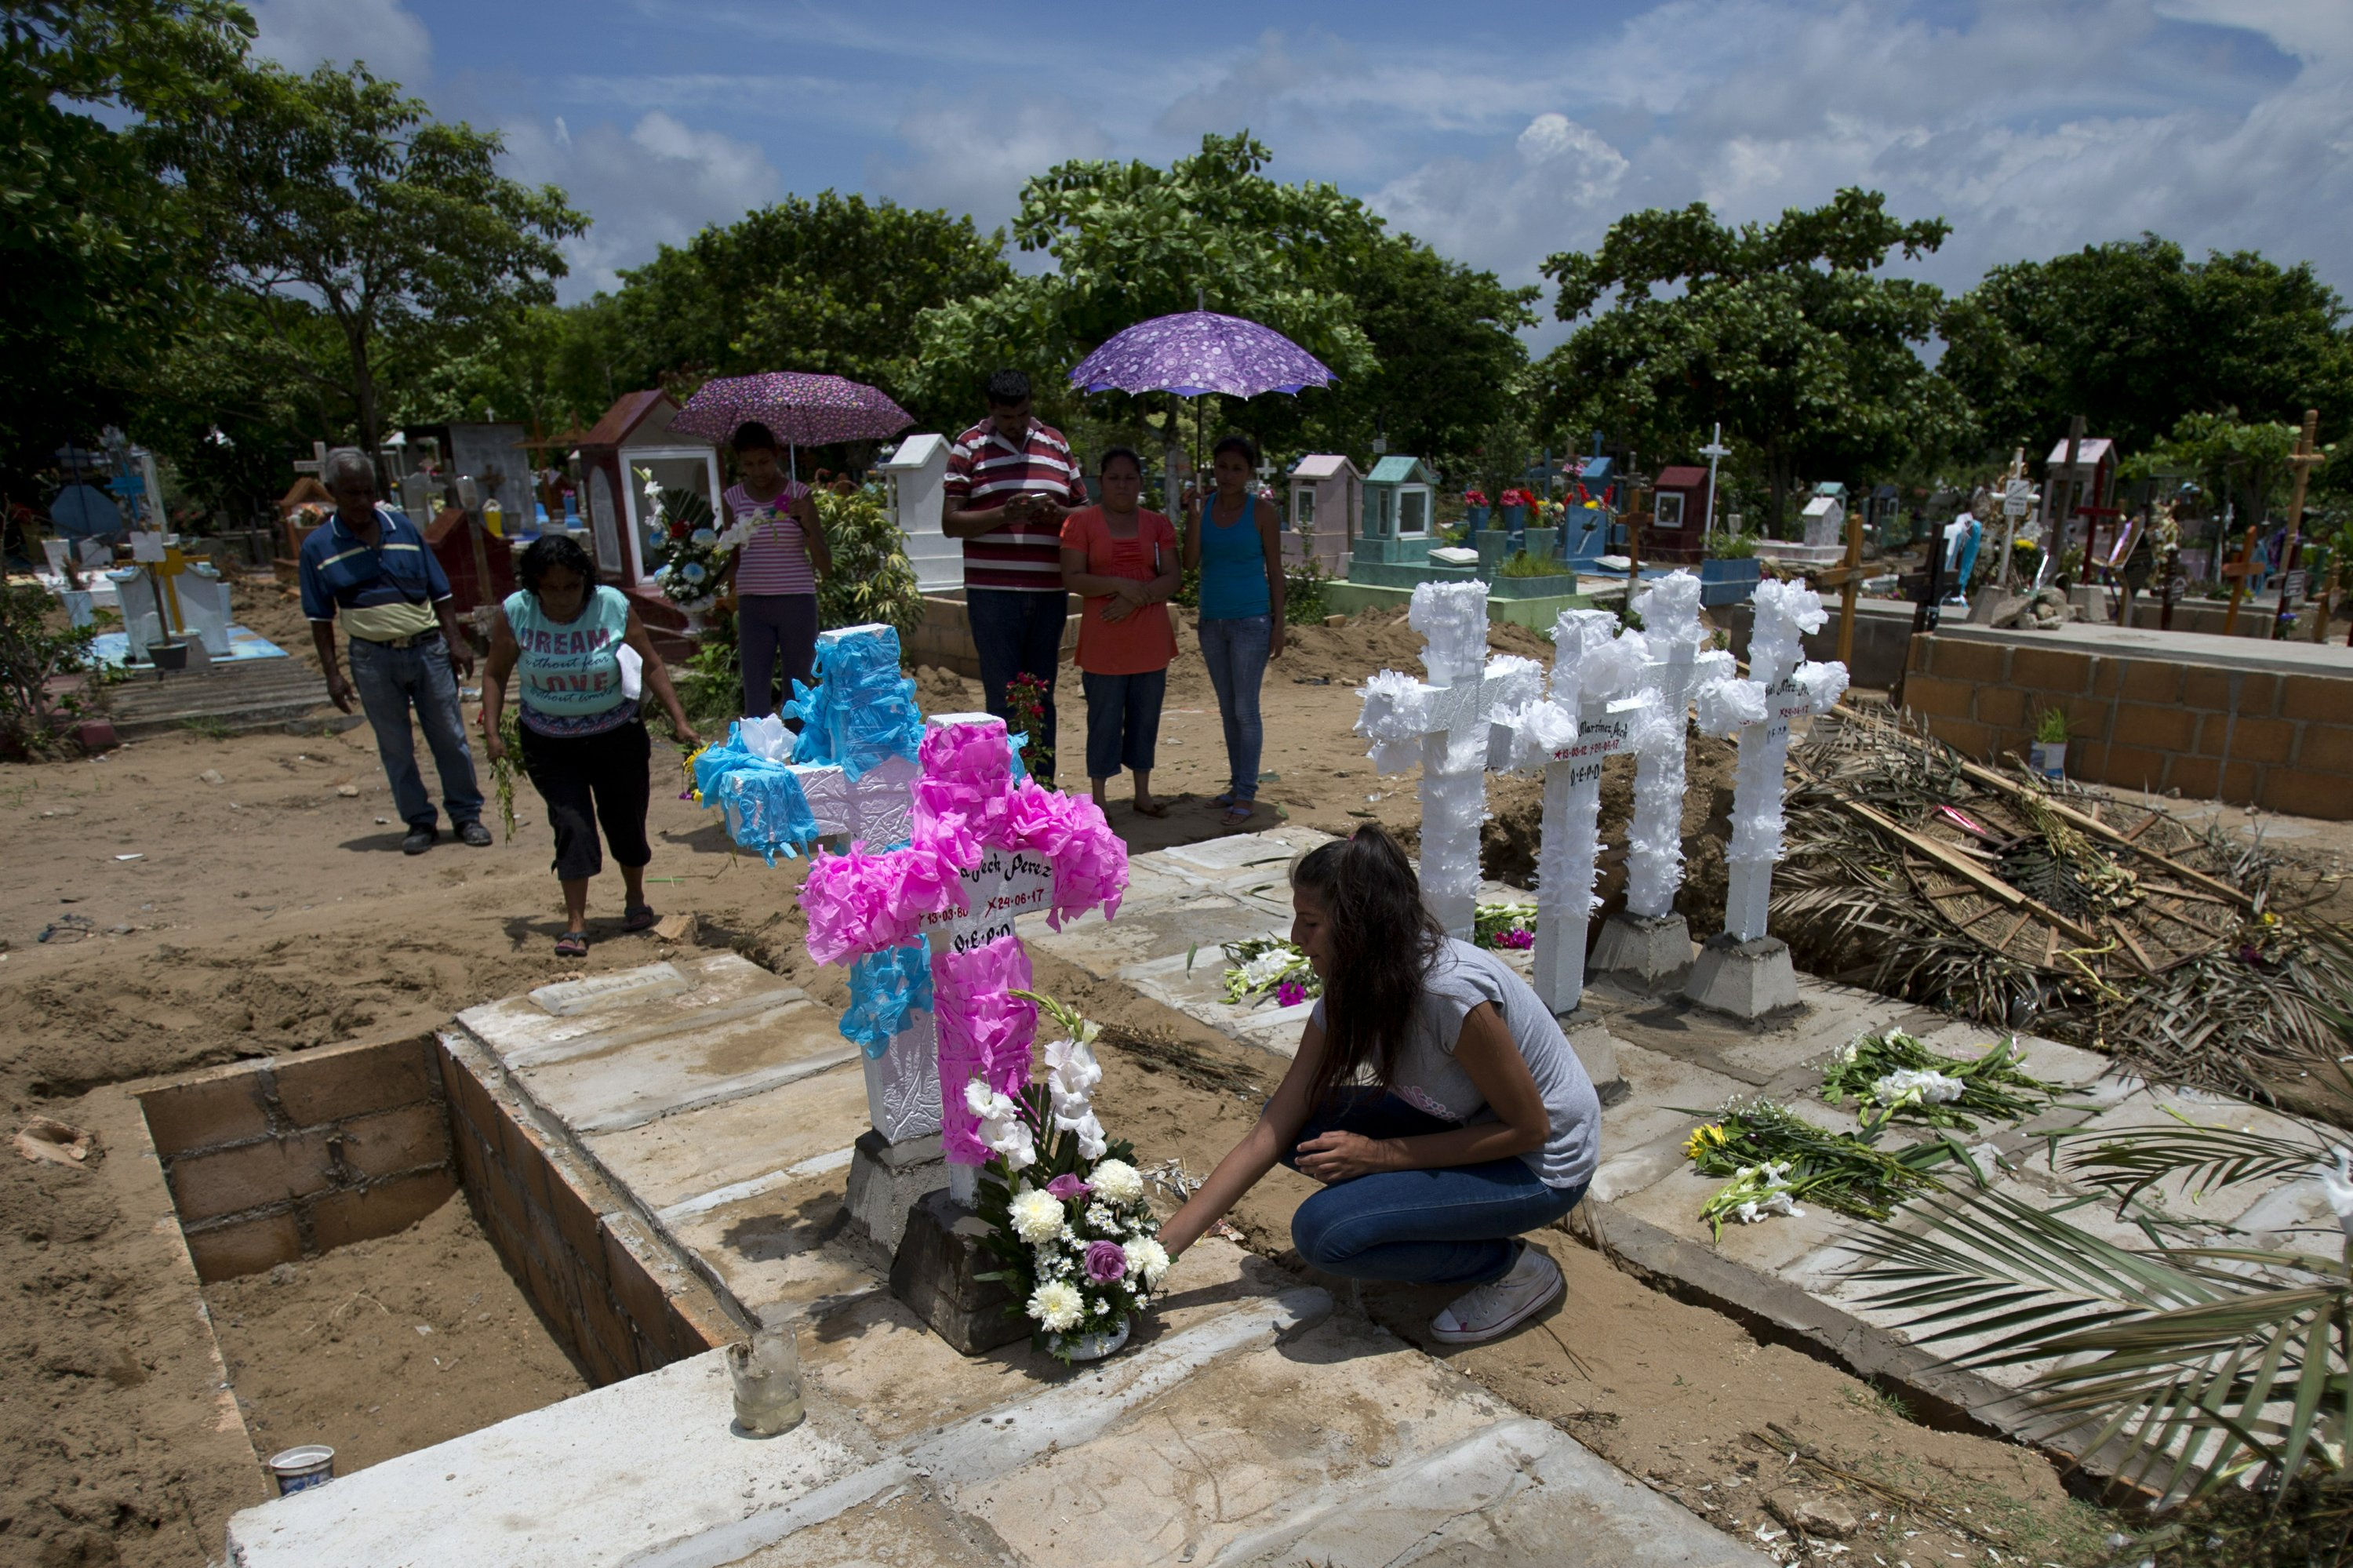 In Mexico, massacre of family underlines surging violence